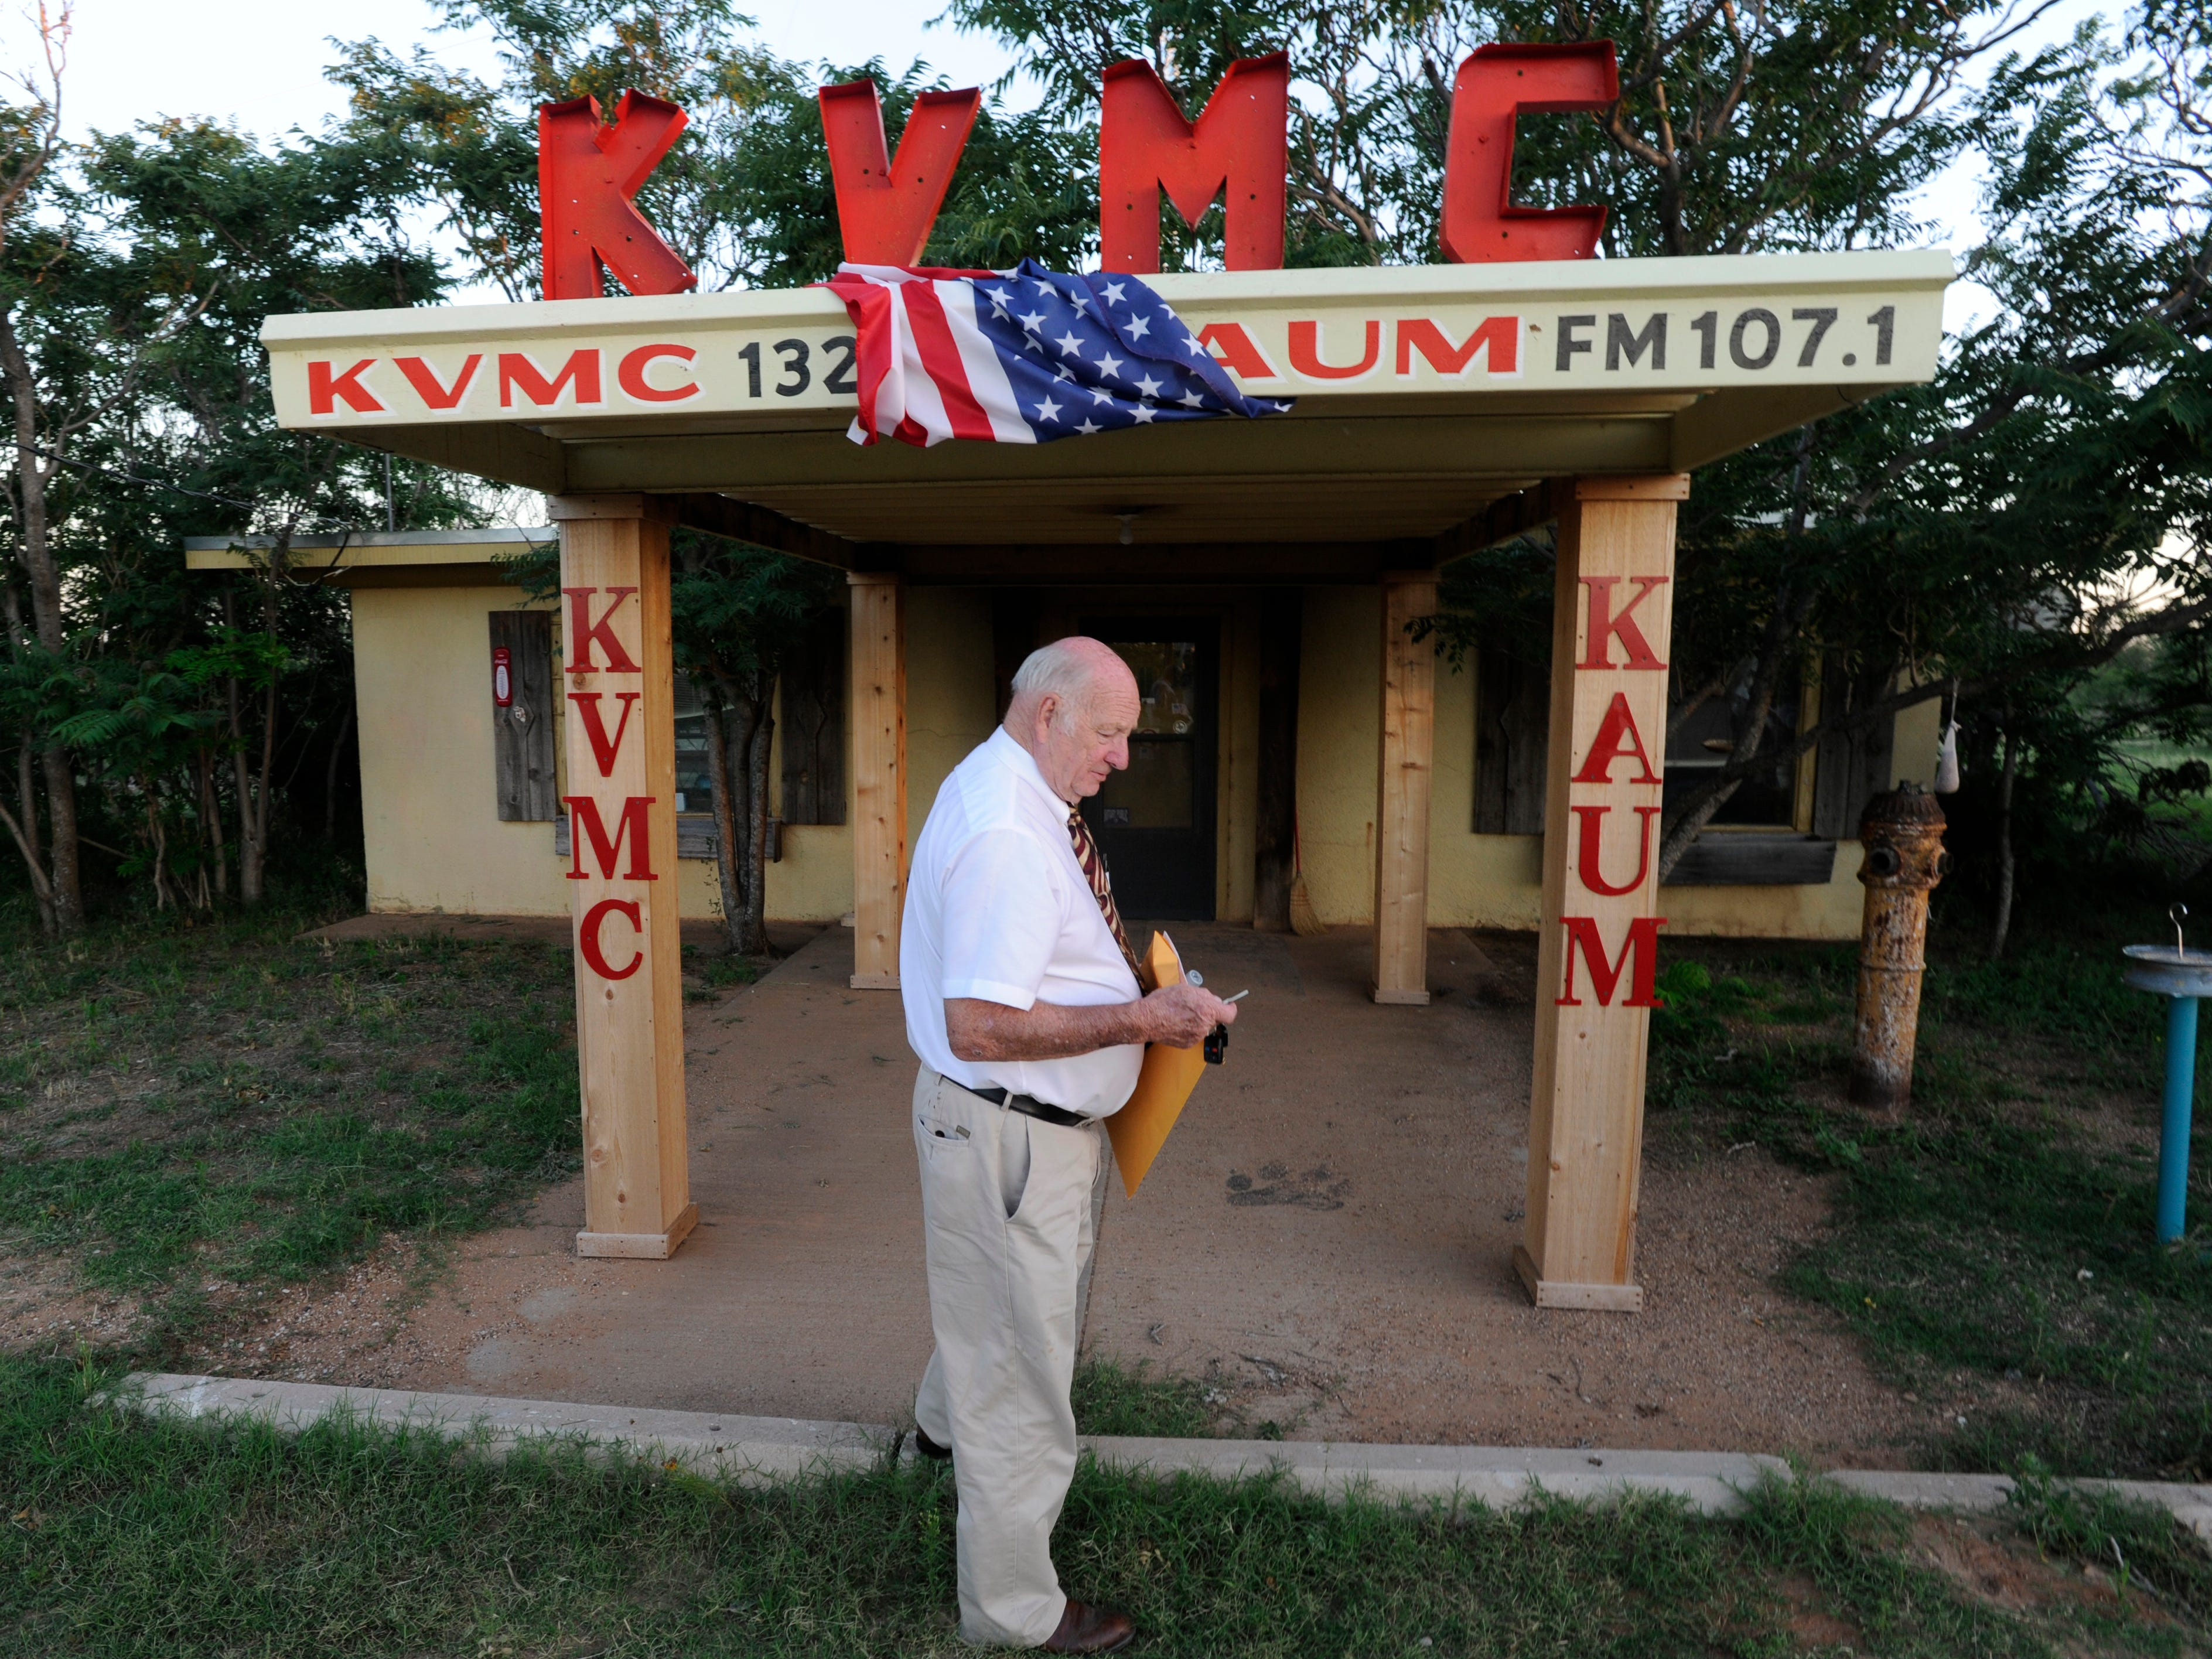 Jim Baum checks his keys before entering his radio station, the American flag having blown by the wind between the call letters, Tuesday June 11, 2013. Baum is the owner of KVMC/KAUM radio and the mayor of Colorado City.